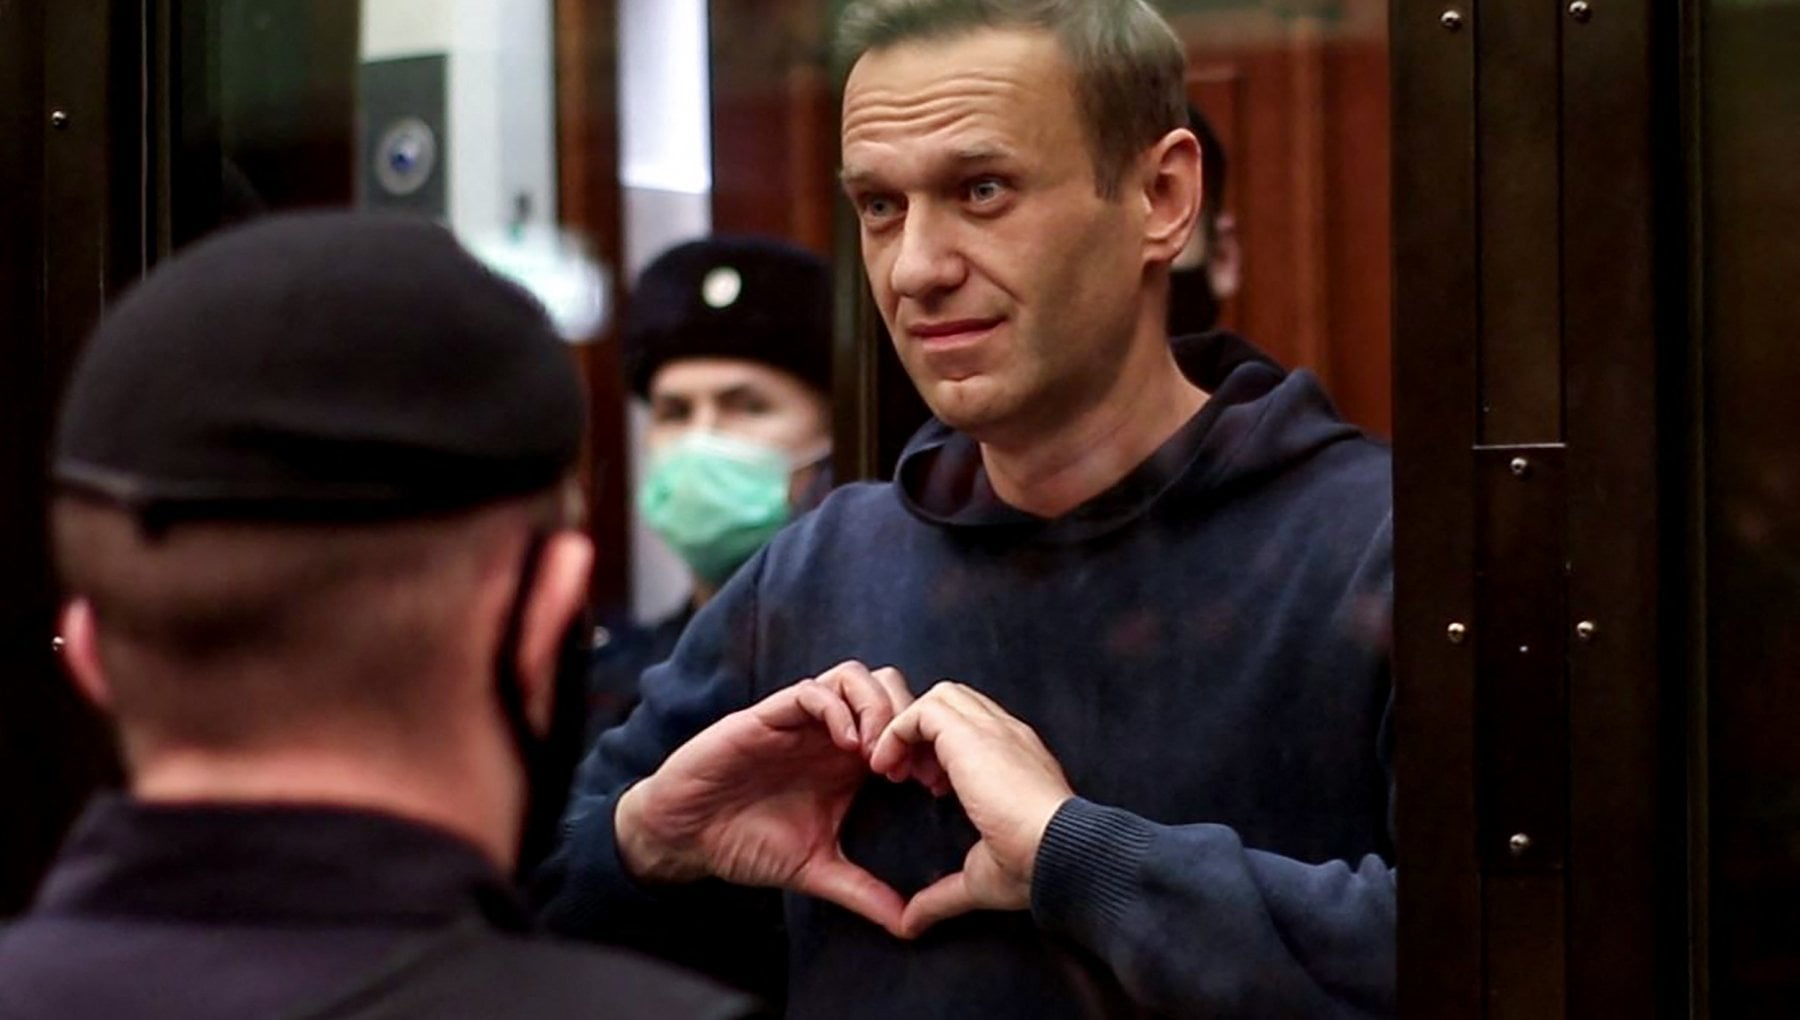 """194220760 416a2e7c b9d0 47bc 96a3 2182dde4c965 - Russia, timori per la """"vita e salute"""" dell'oppositore Navalnyj in carcere"""